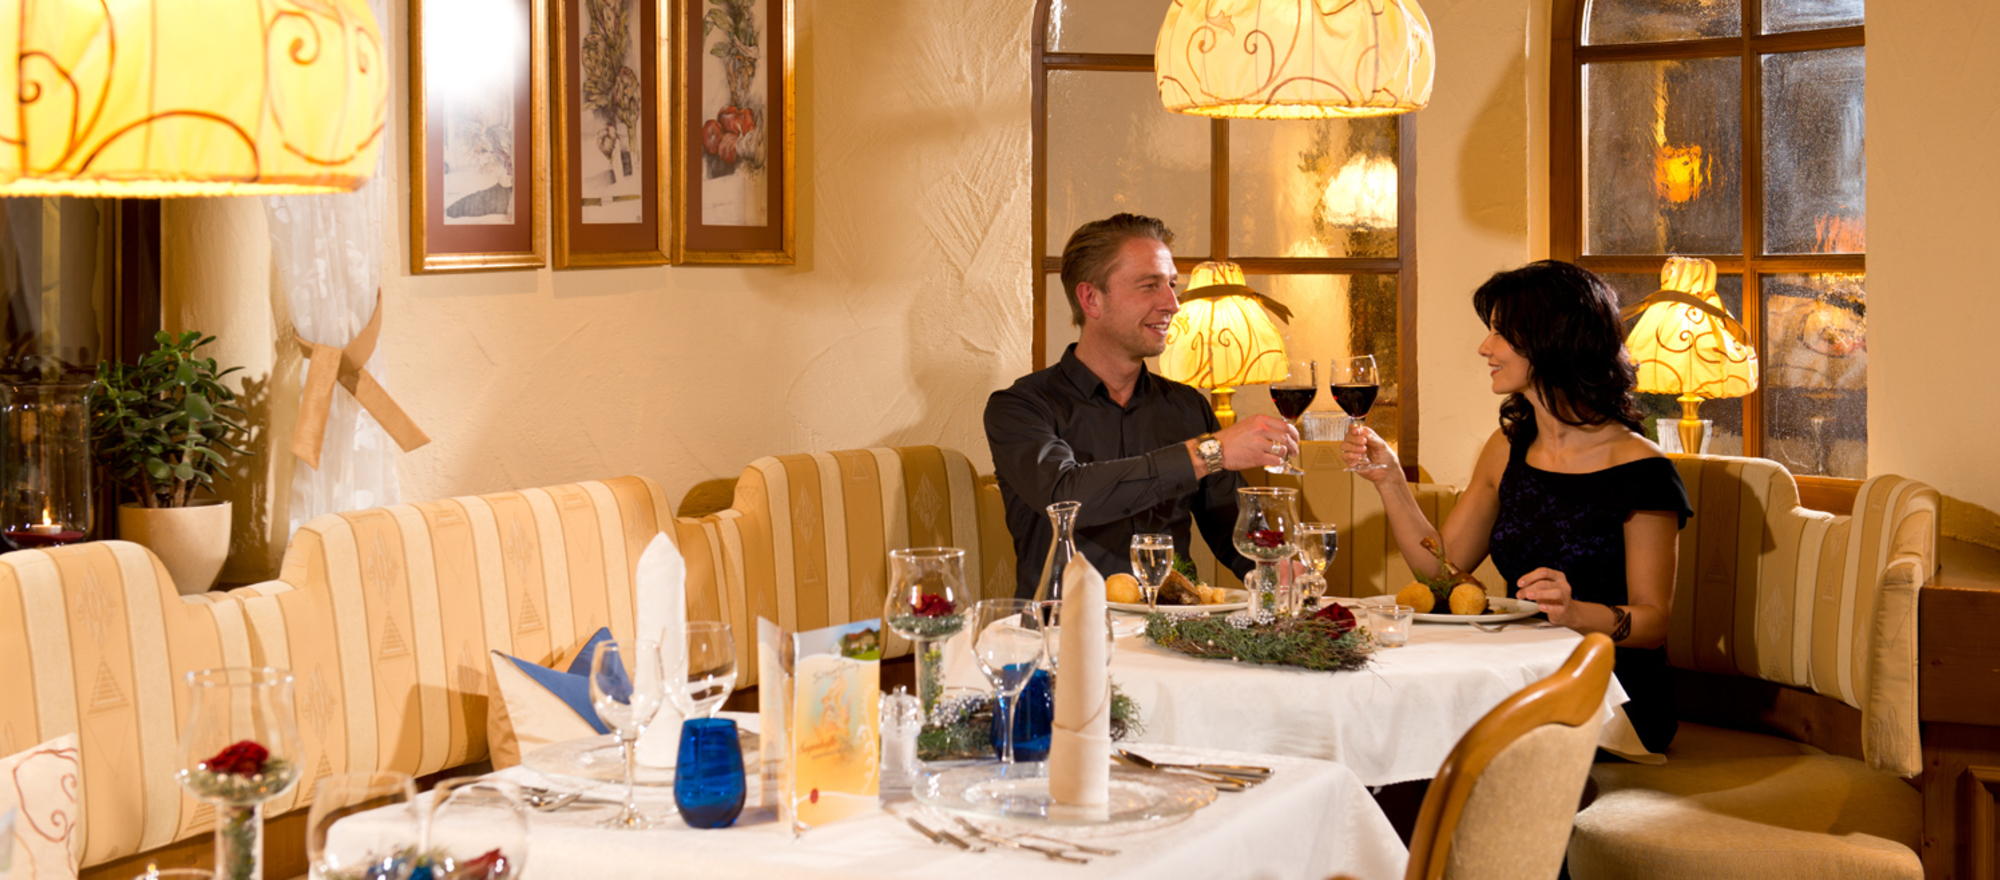 The a la carte restaurant St. GeorgStube serve culinary delicacies from our own as well as neighboring regions  at the 4-star Ringhotel Schwarzwald-Hotel Silberkoenig in Gutach-Bleibach